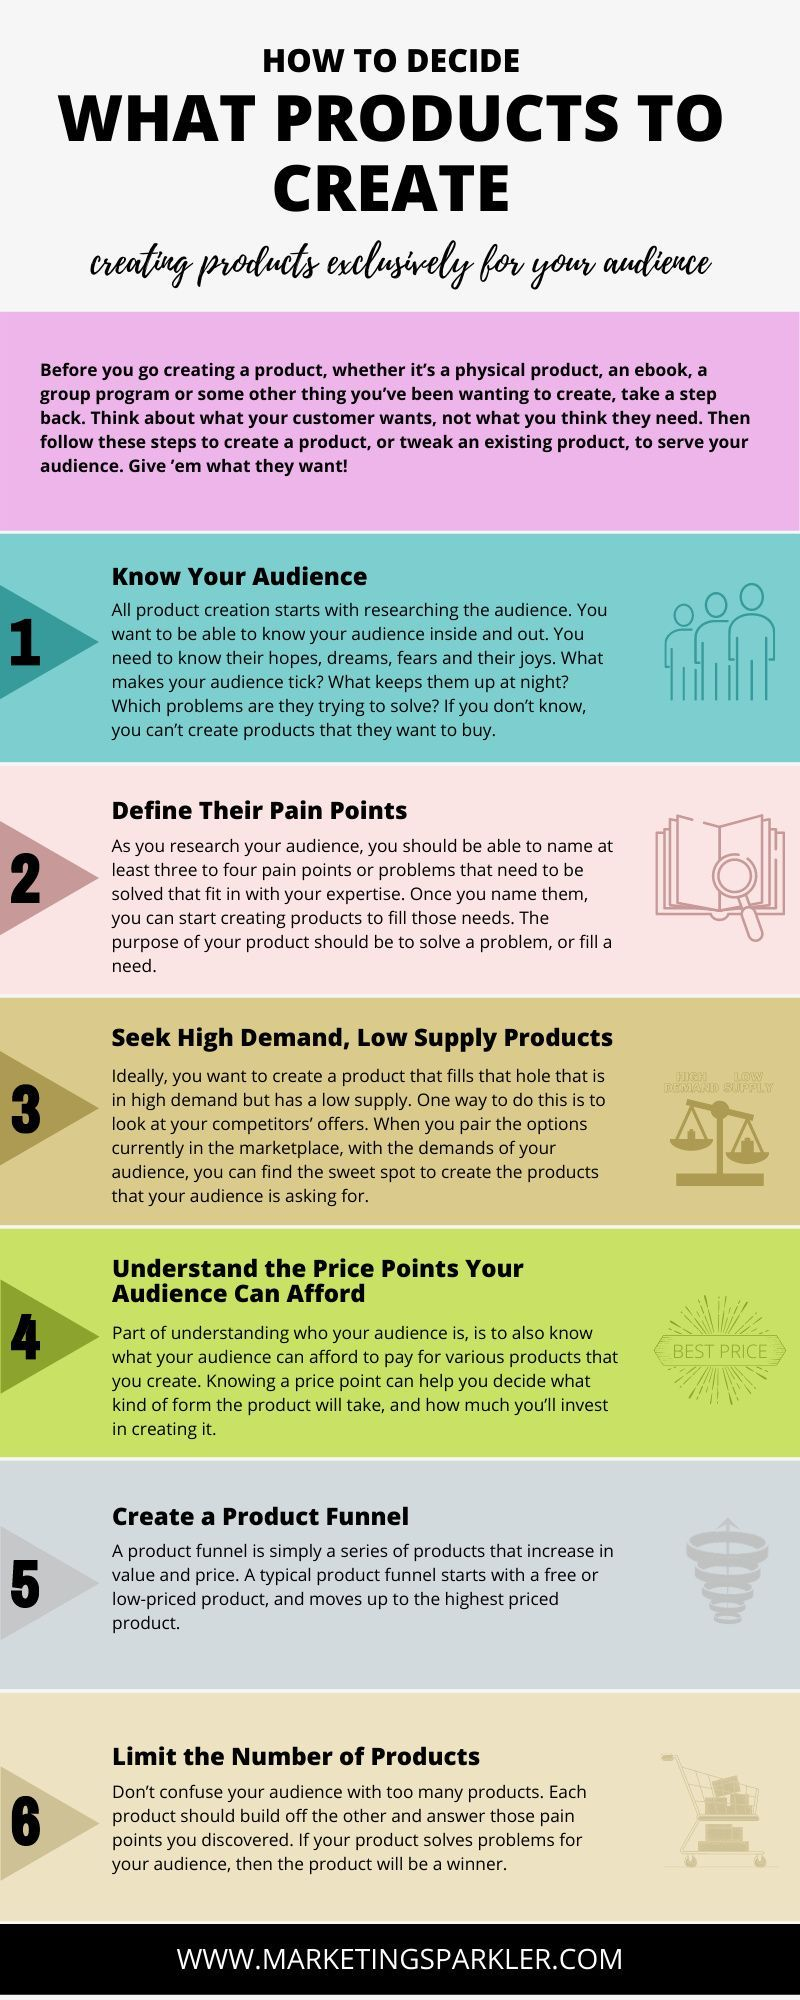 How To Decide What Products To Create I Marketing Sparkler Small Business Marketing Plan Infographic Marketing Small Business Marketing Social Media